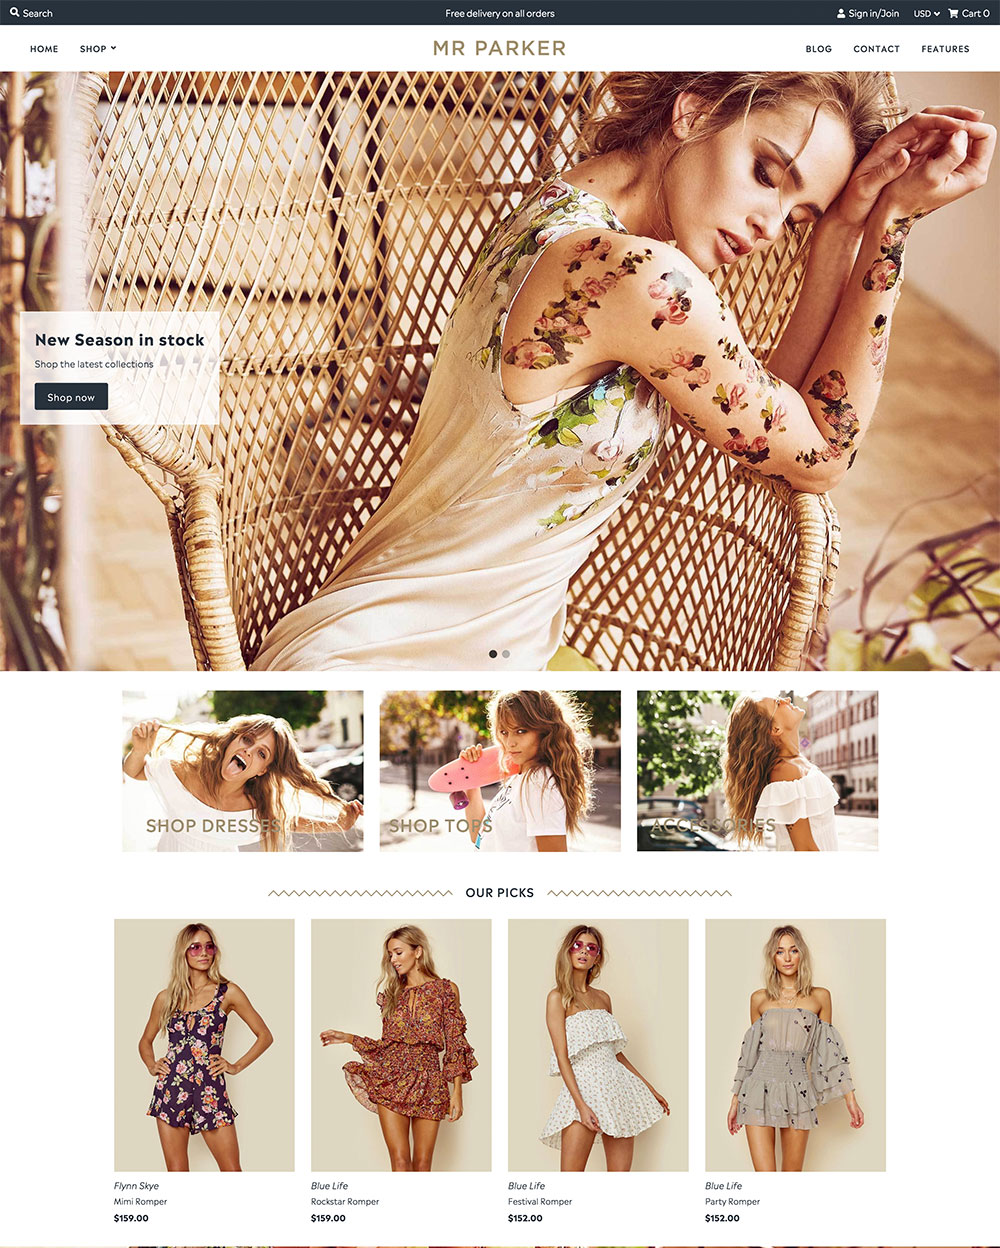 Clothing & Fashion Ecommerce Website Templates - Free and Premium ...